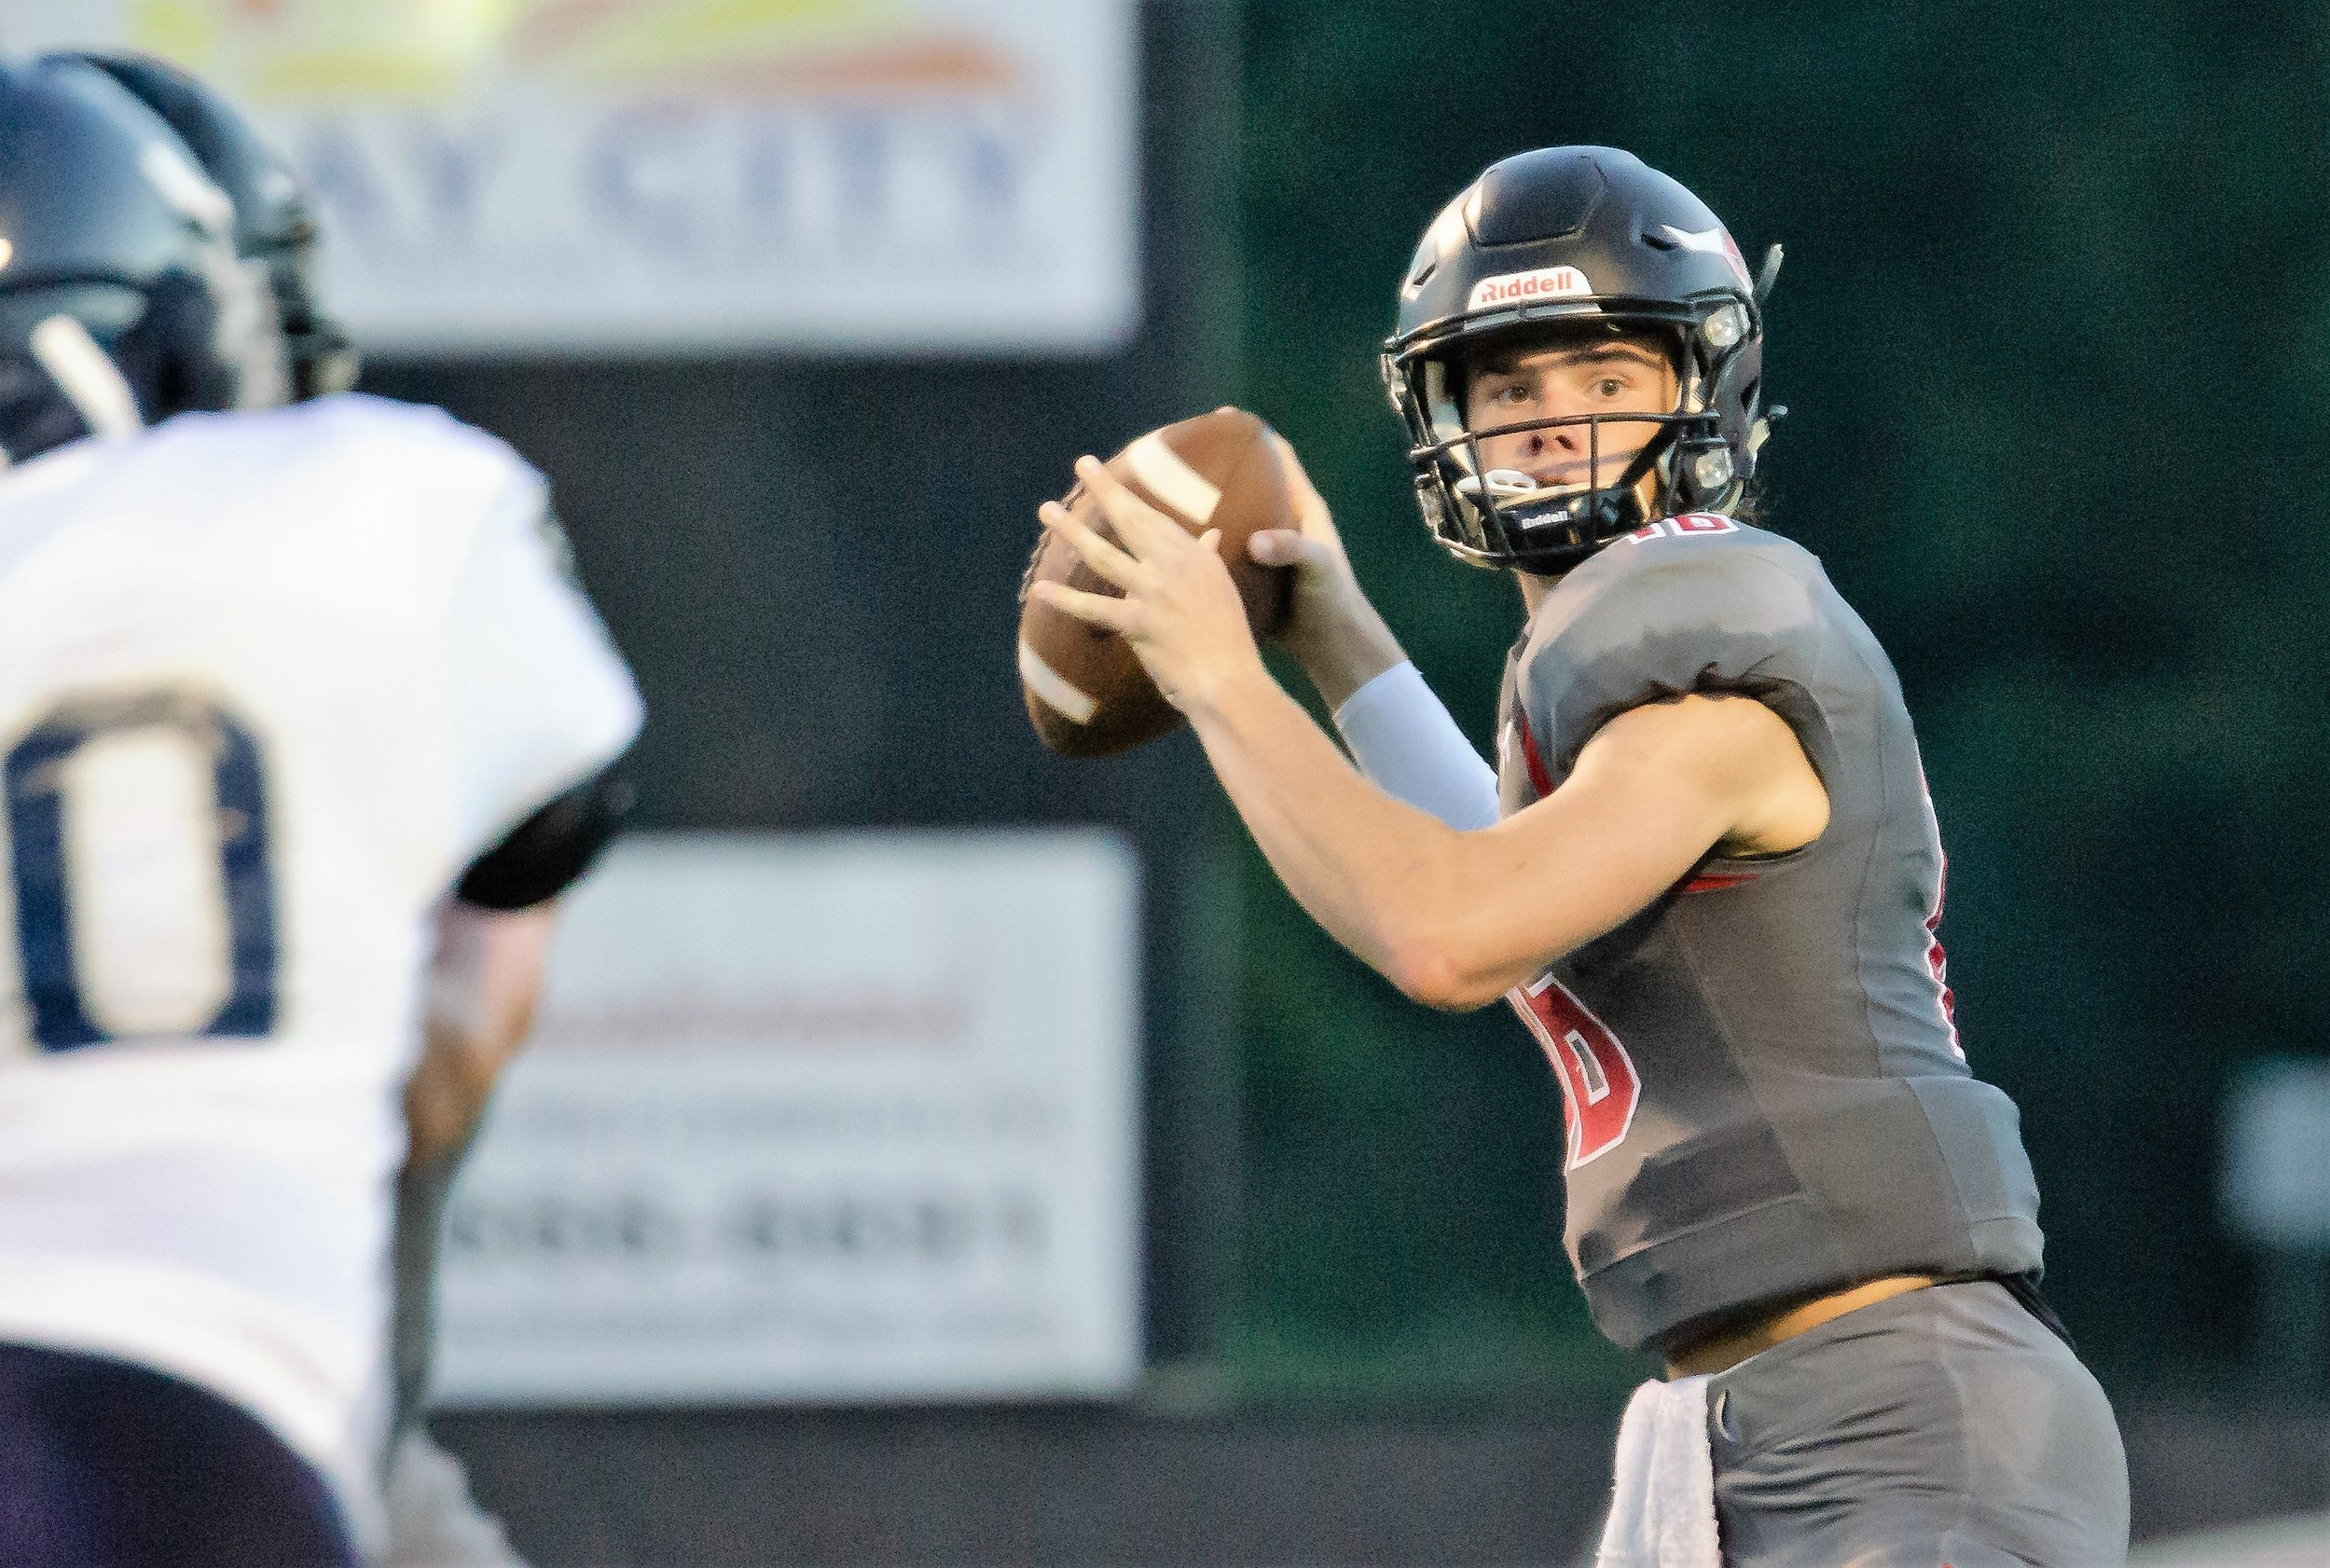 Jackson Burkhalter and the Toros defend The Hill Friday night as county rival Robertsdale visits Spanish Fort.